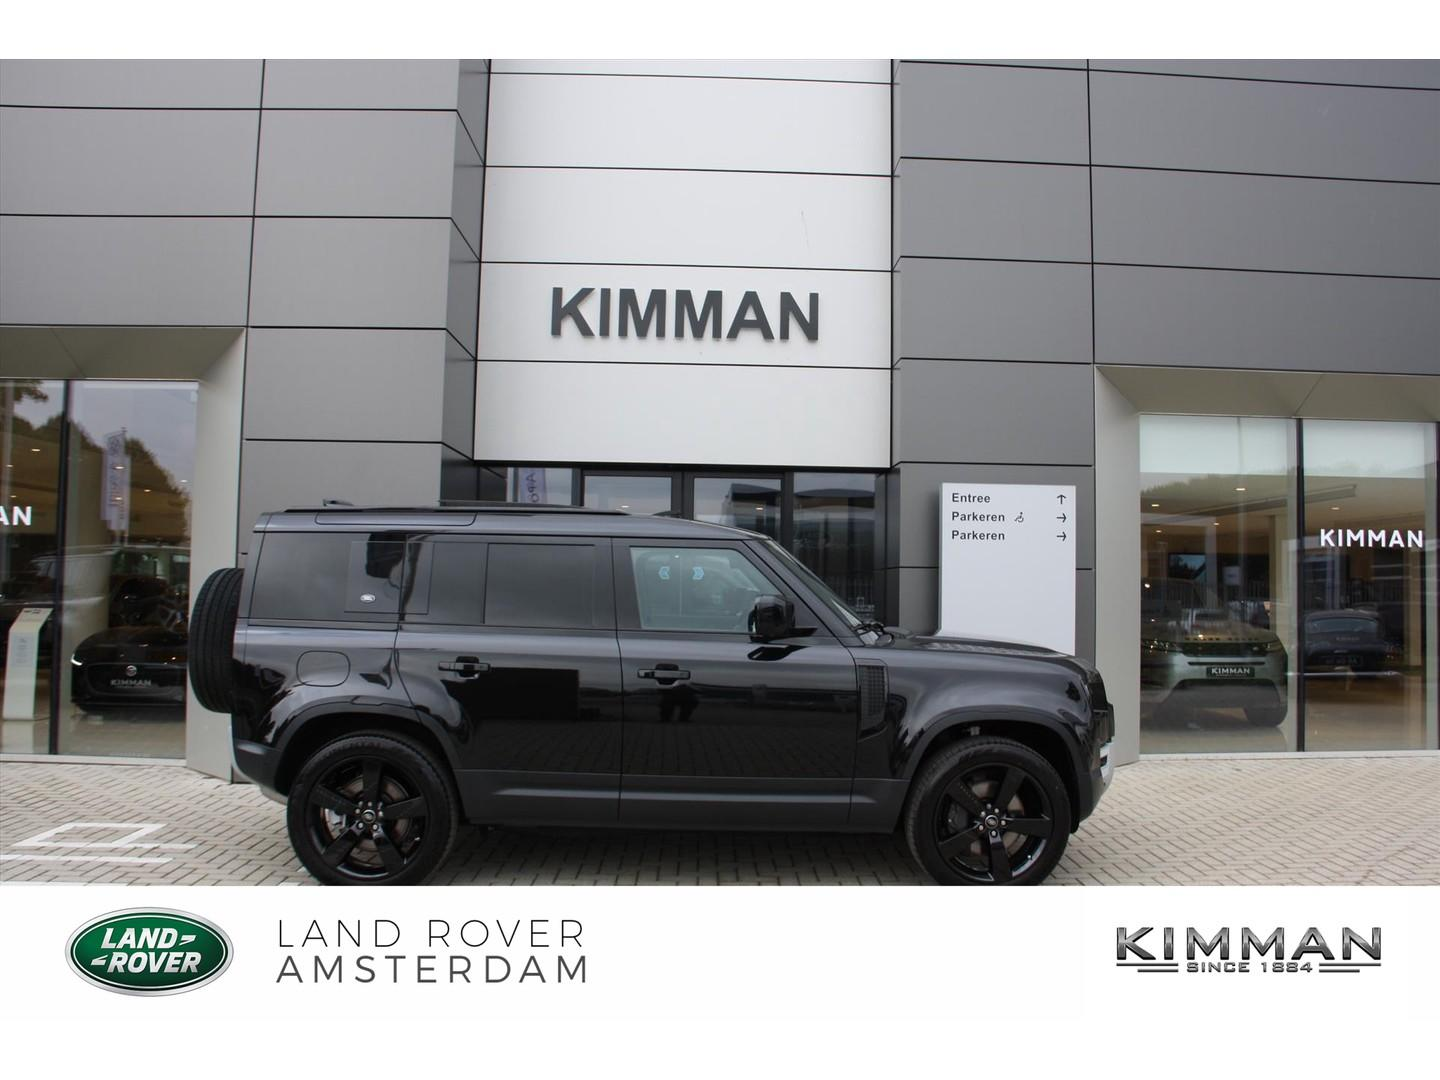 Land rover Defender 110 d240 * 7 zits * se black pack awd